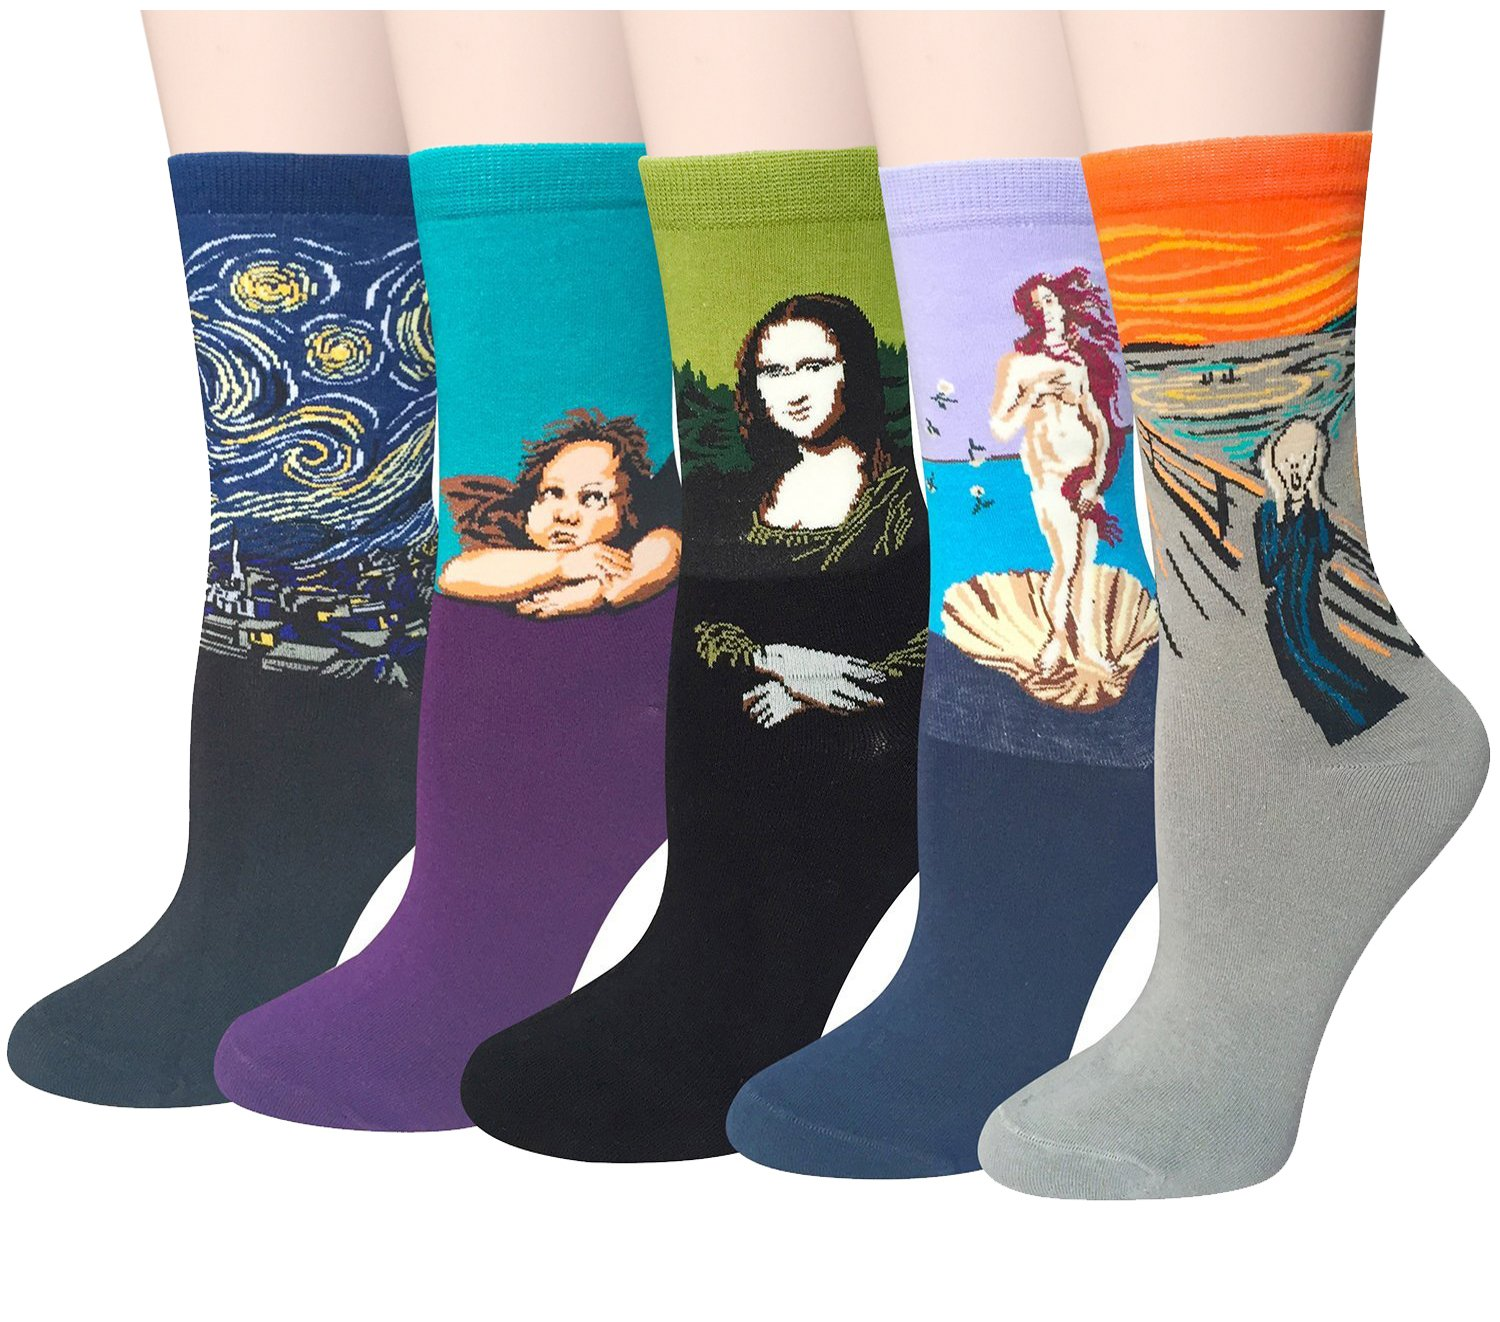 Chalier 5 Pairs Womens Famous Painting Art Printed Funny Casual Cotton Crew Socks, Art Painting B, Fits shoe size, mens 5-10, womens 6-11